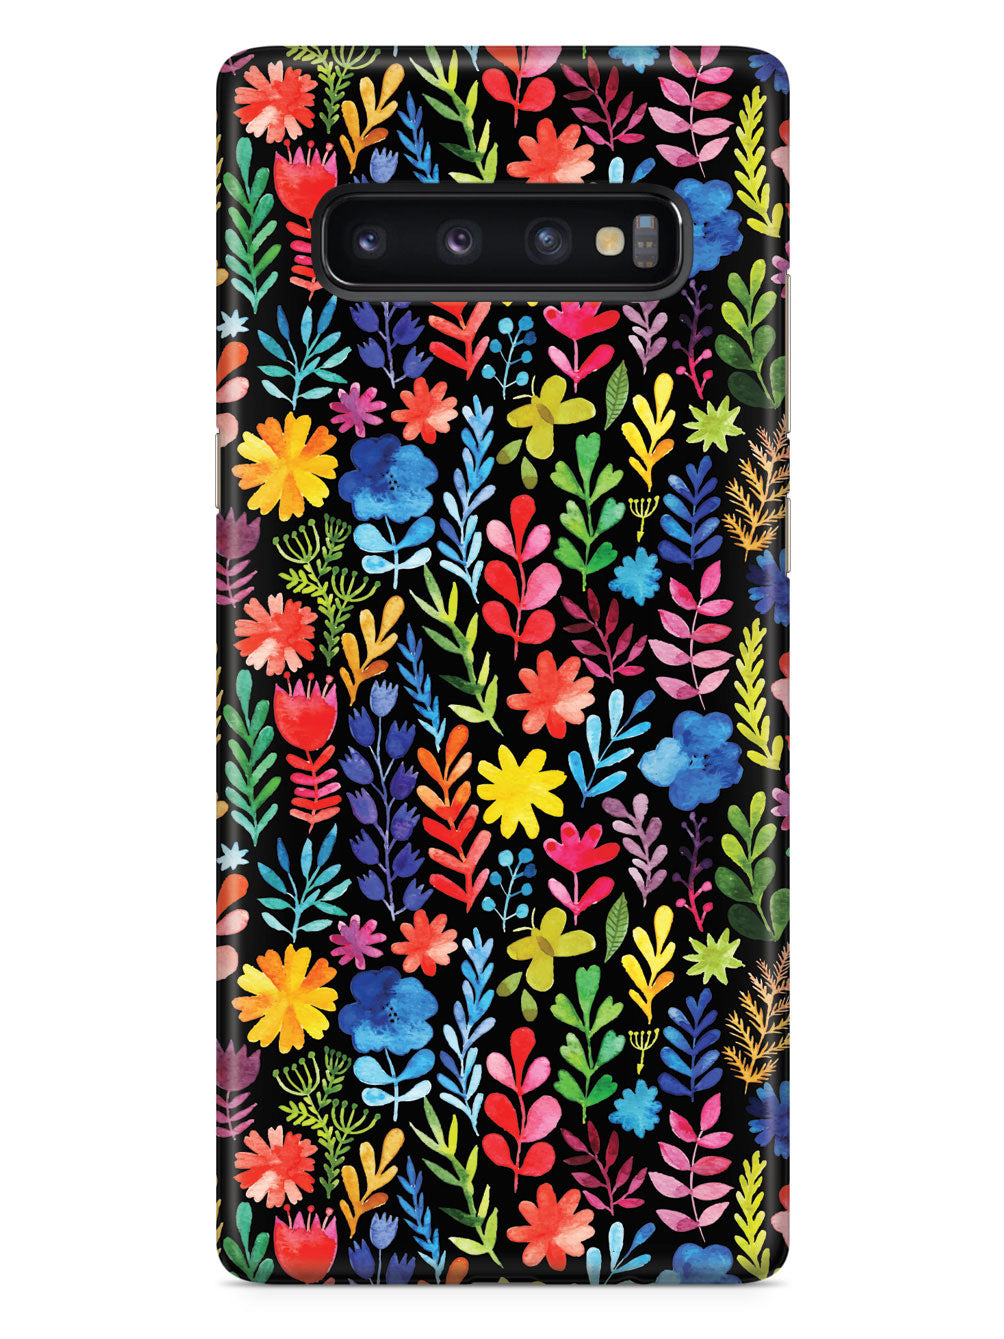 Bright And Colorful Watercolor Flowers - Black Case